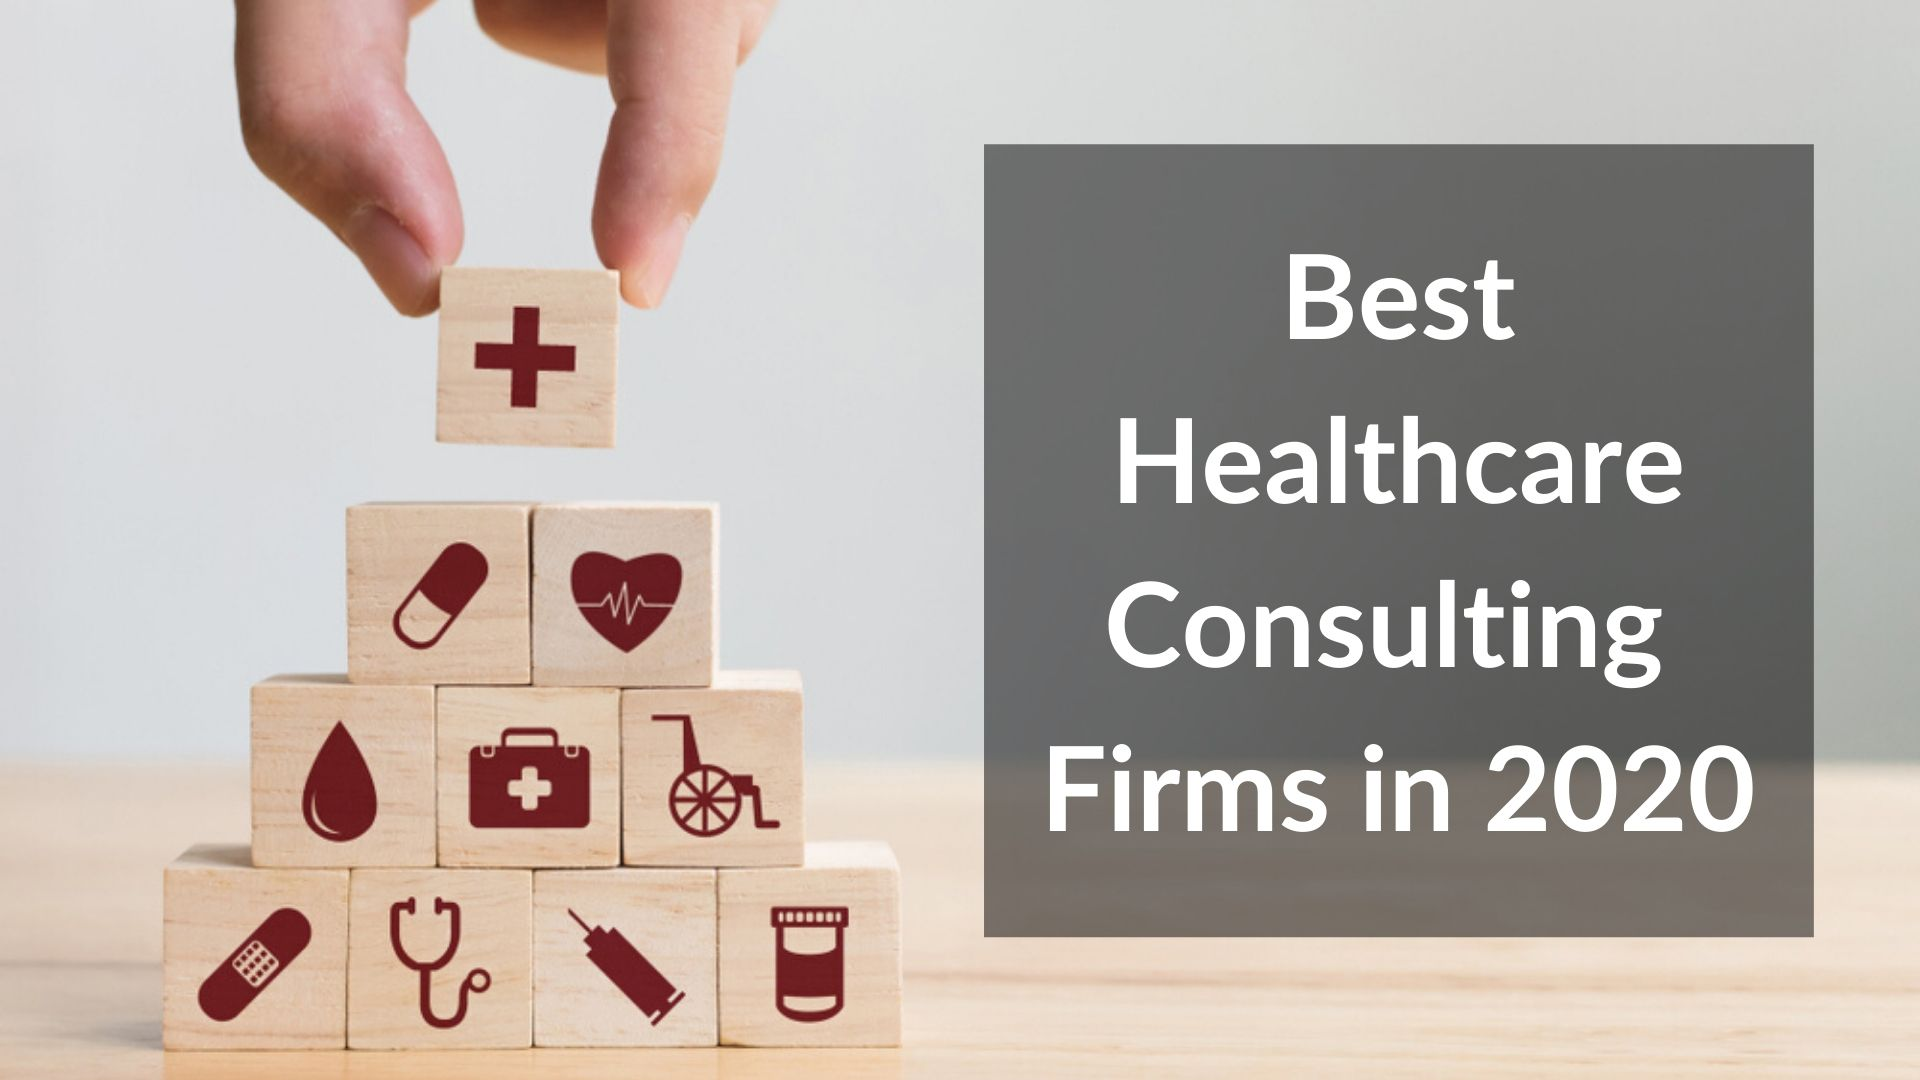 Best Healthcare Consulting firms in 2020